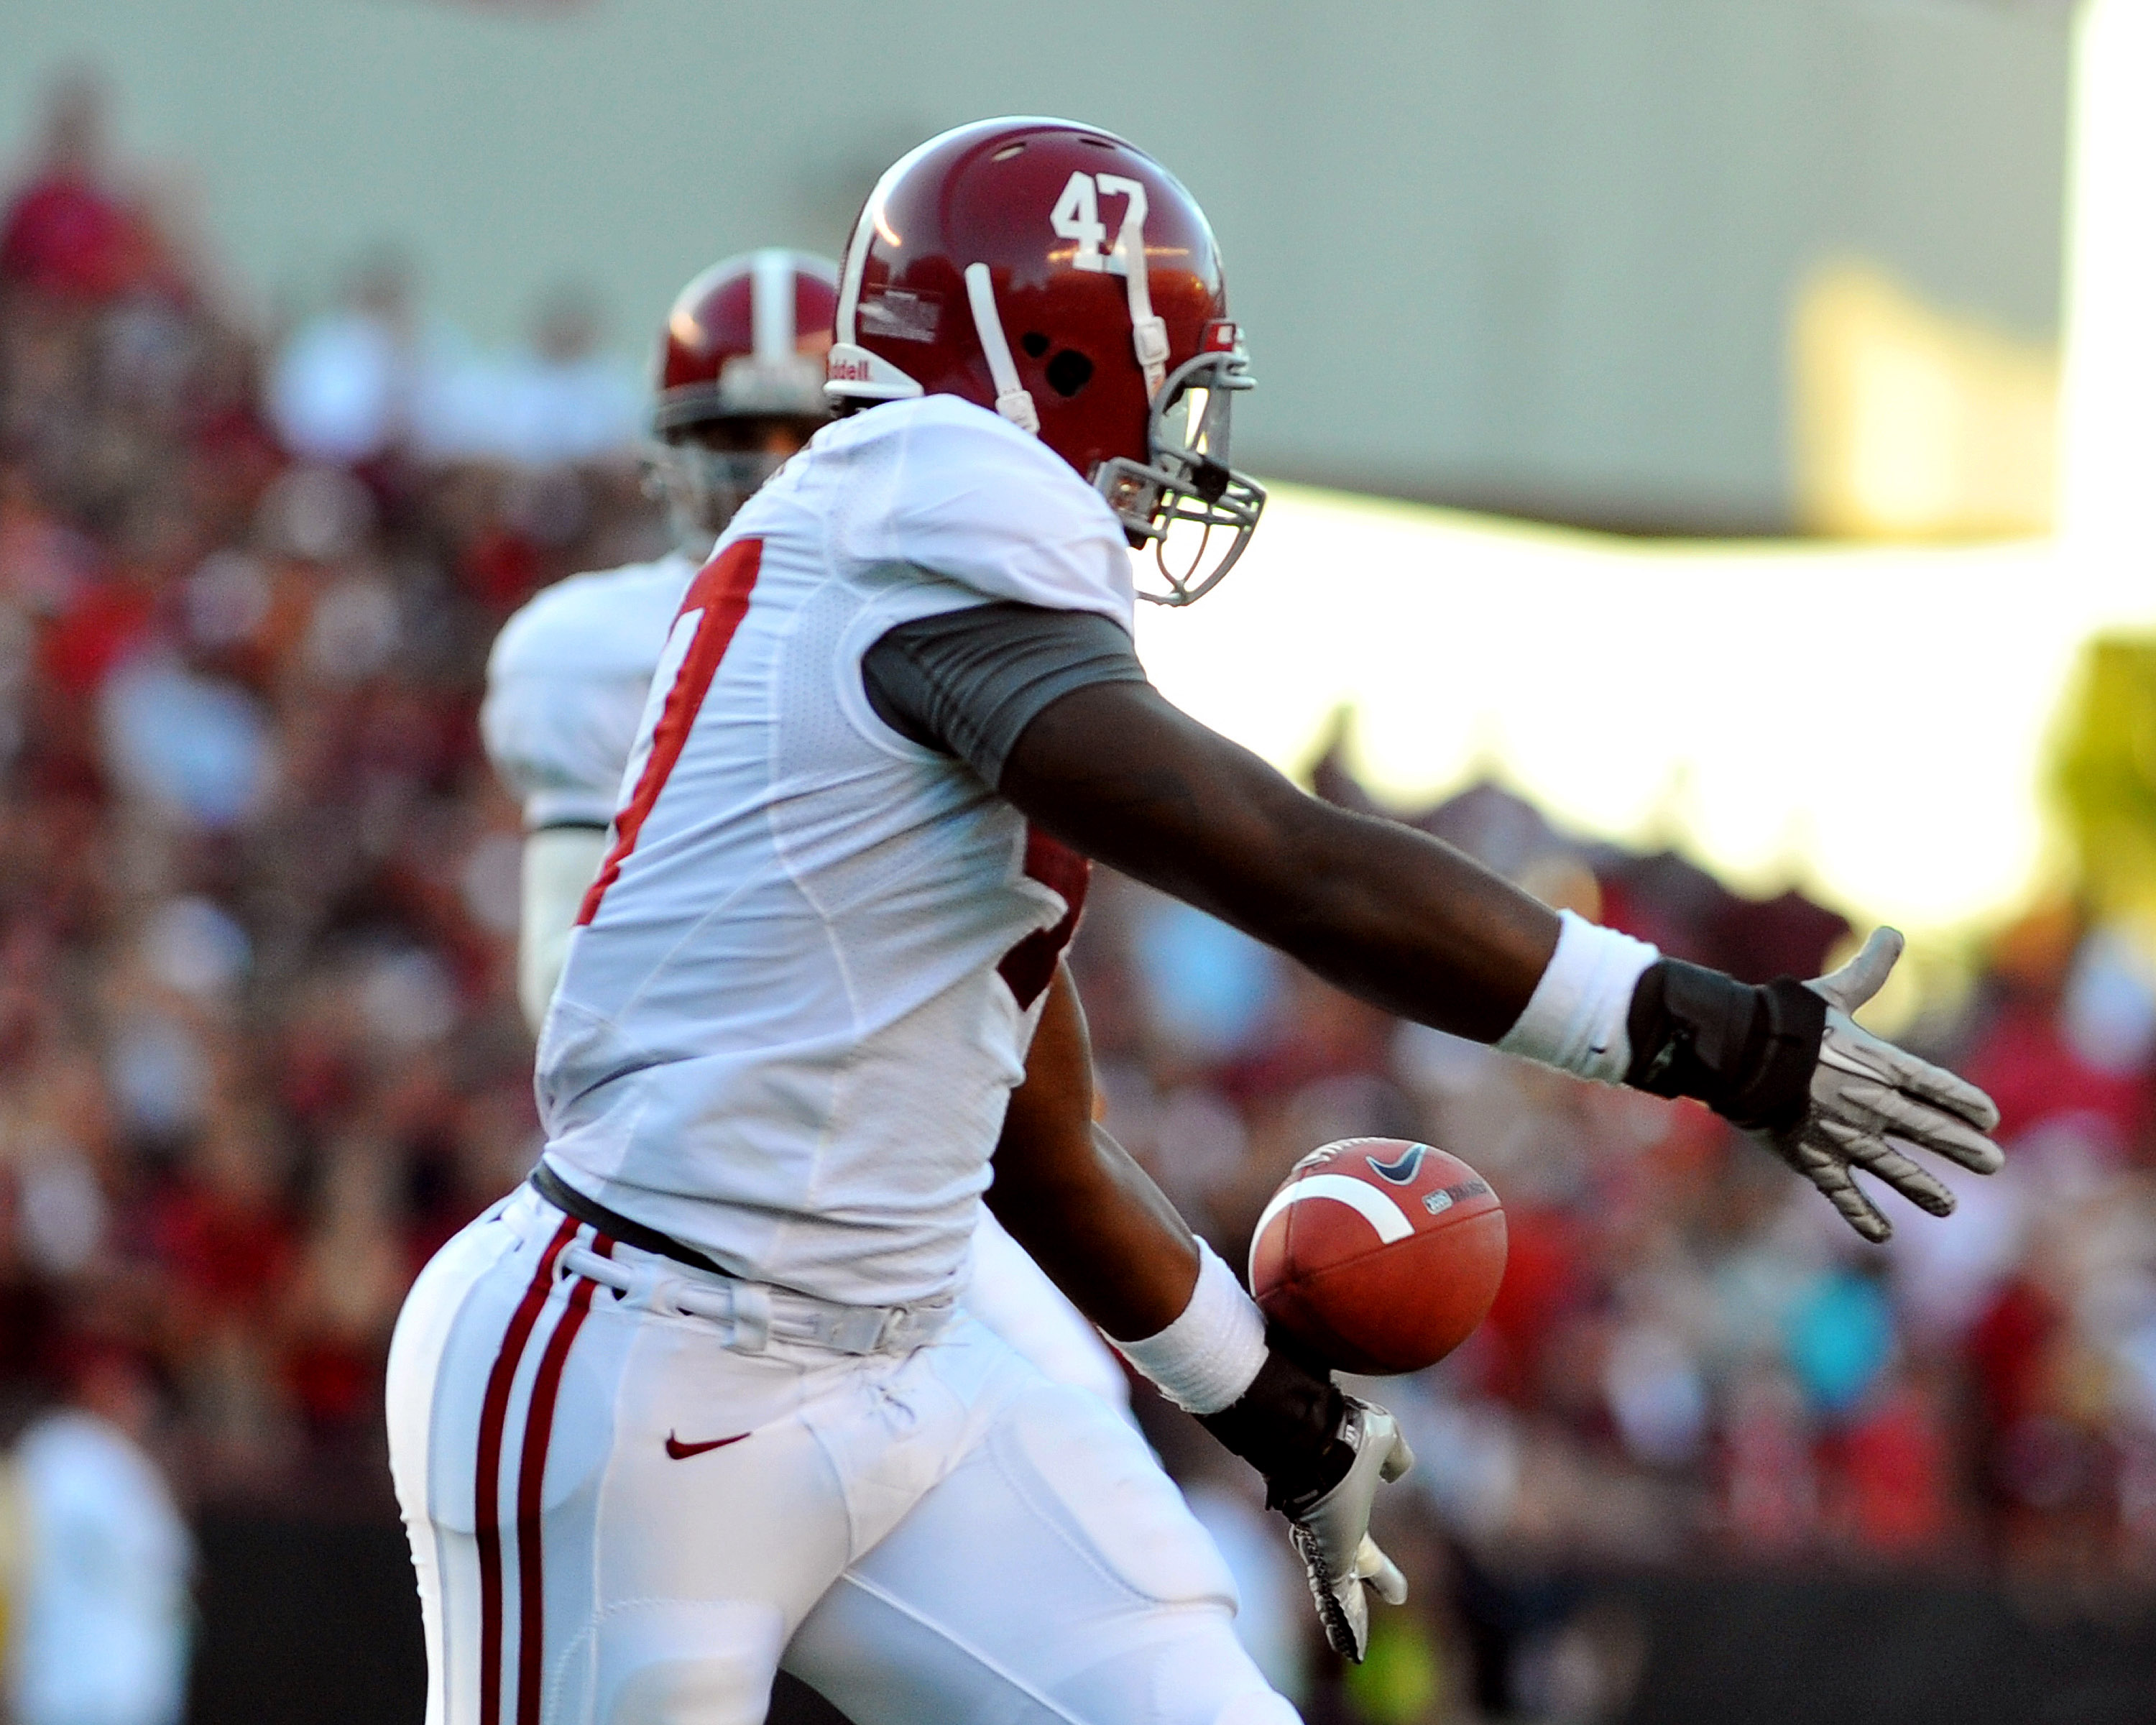 COLUMBIA, SC - OCTOBER 9: Linebacker Ed Stinson #47 of the Alabama Crimson Tide drops a fourth-down pass after a fake field goal  against the South Carolina Gamecocks October 9, 2010 at Williams-Brice Stadium in Columbia, South Carolina.  (Photo by Al Mes